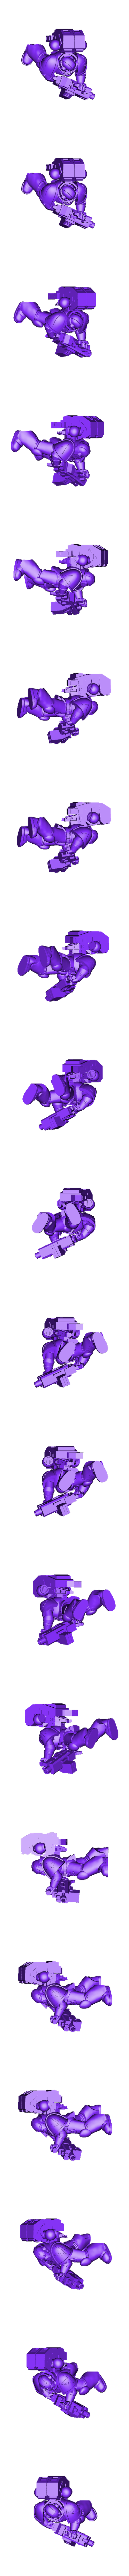 1_HeavyMG.stl Download free STL file Angelic Space Soldiers with Heavy Weapons • Template to 3D print, PhysUdo